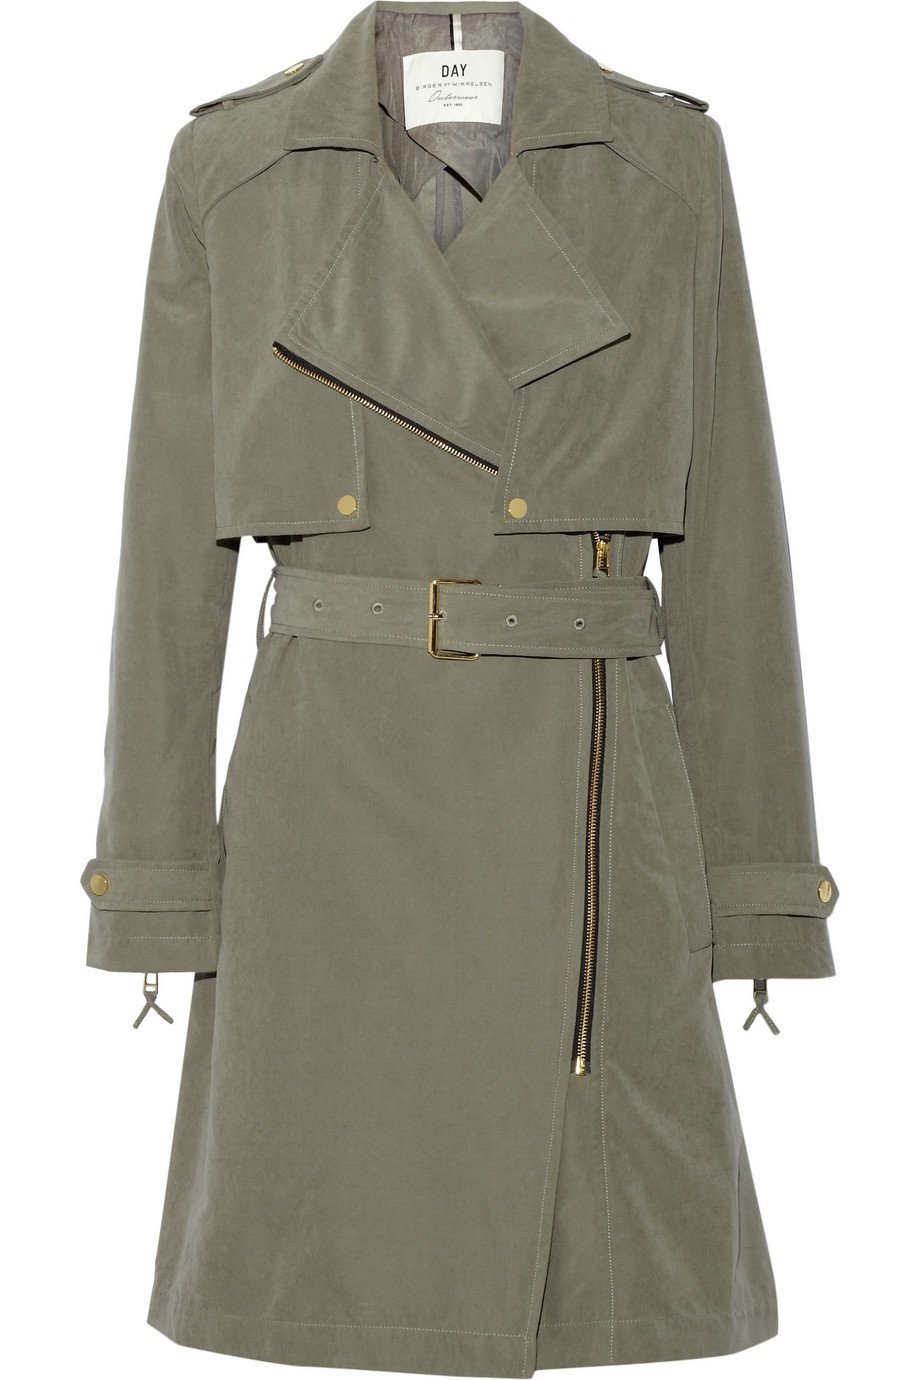 day birger et mikkelsen day go brushed twill trench coat in gray lyst. Black Bedroom Furniture Sets. Home Design Ideas